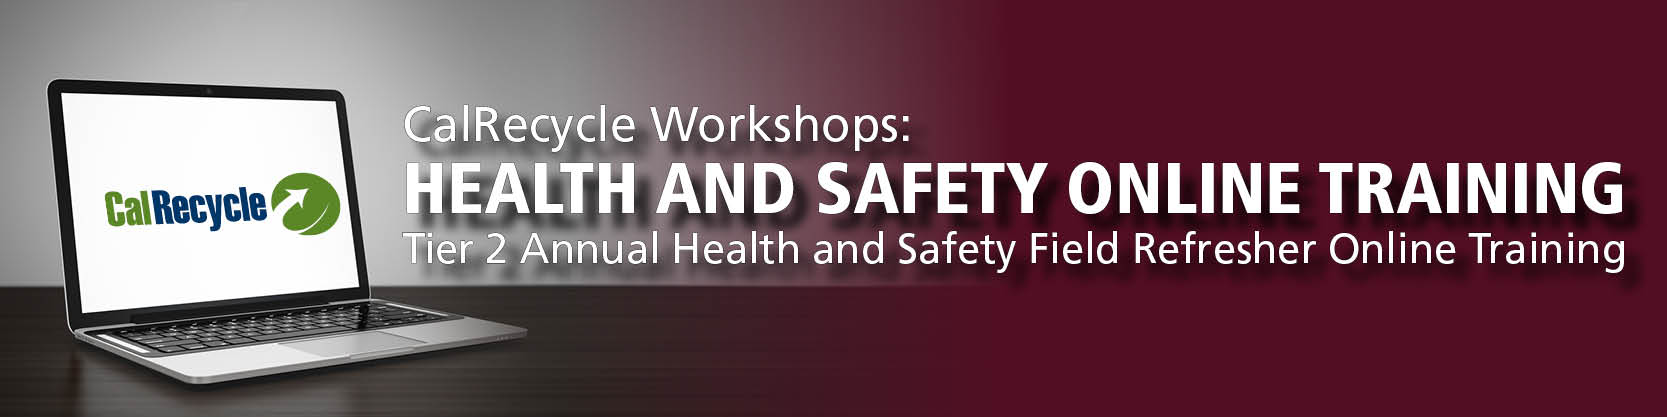 2016/17 CalRecycle Online Training: Tier 2 Health and Safety